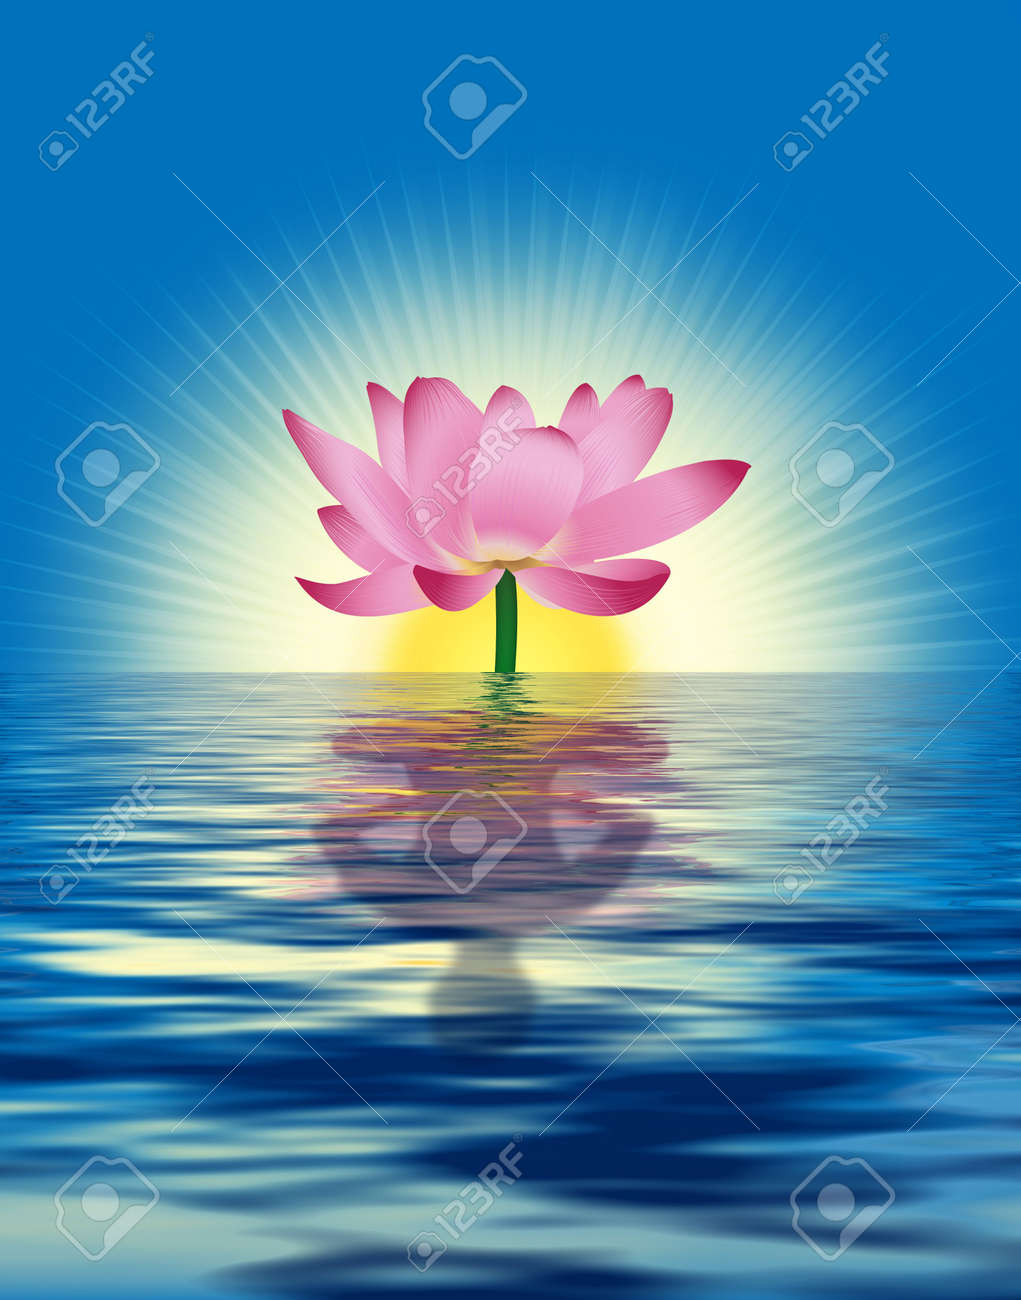 Lotus Reflects Persons Figure In Water Digital Illustration